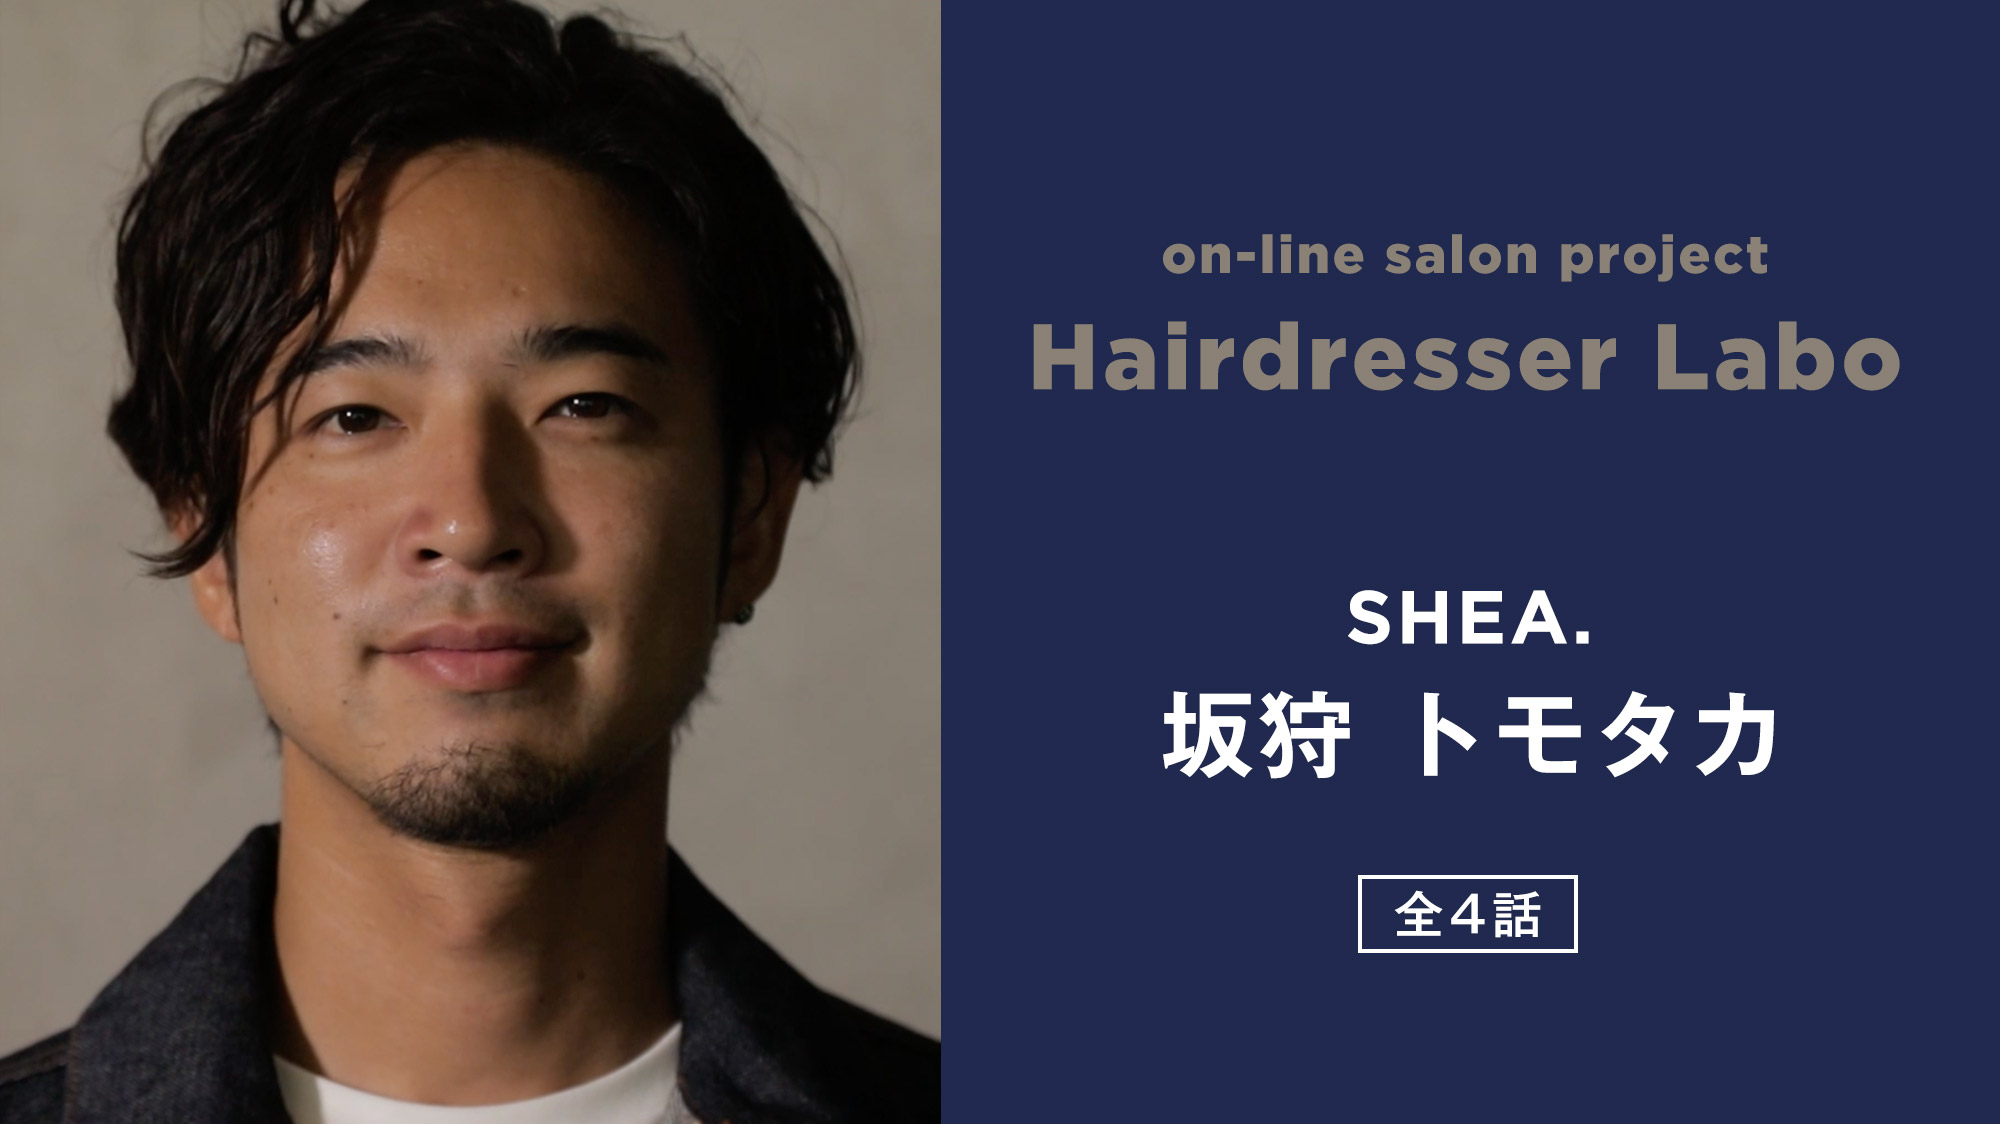 on-line salon project Hairdresser Labo『坂狩トモタカ』 全4話